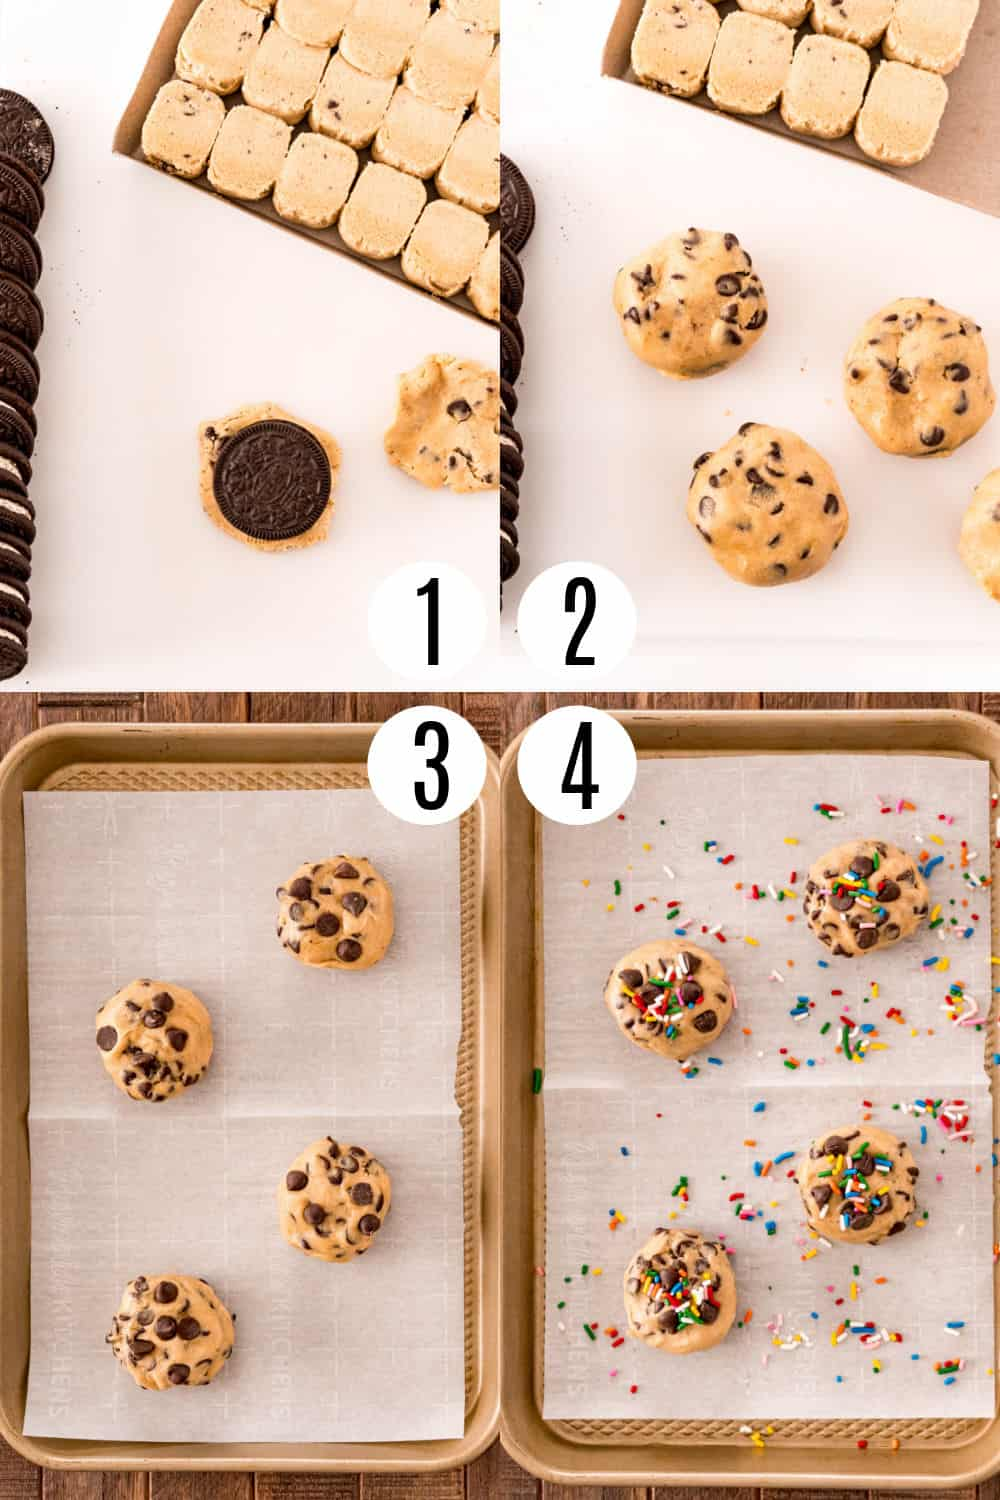 Step by step photos showing how to make Oreo stuffed cookies.